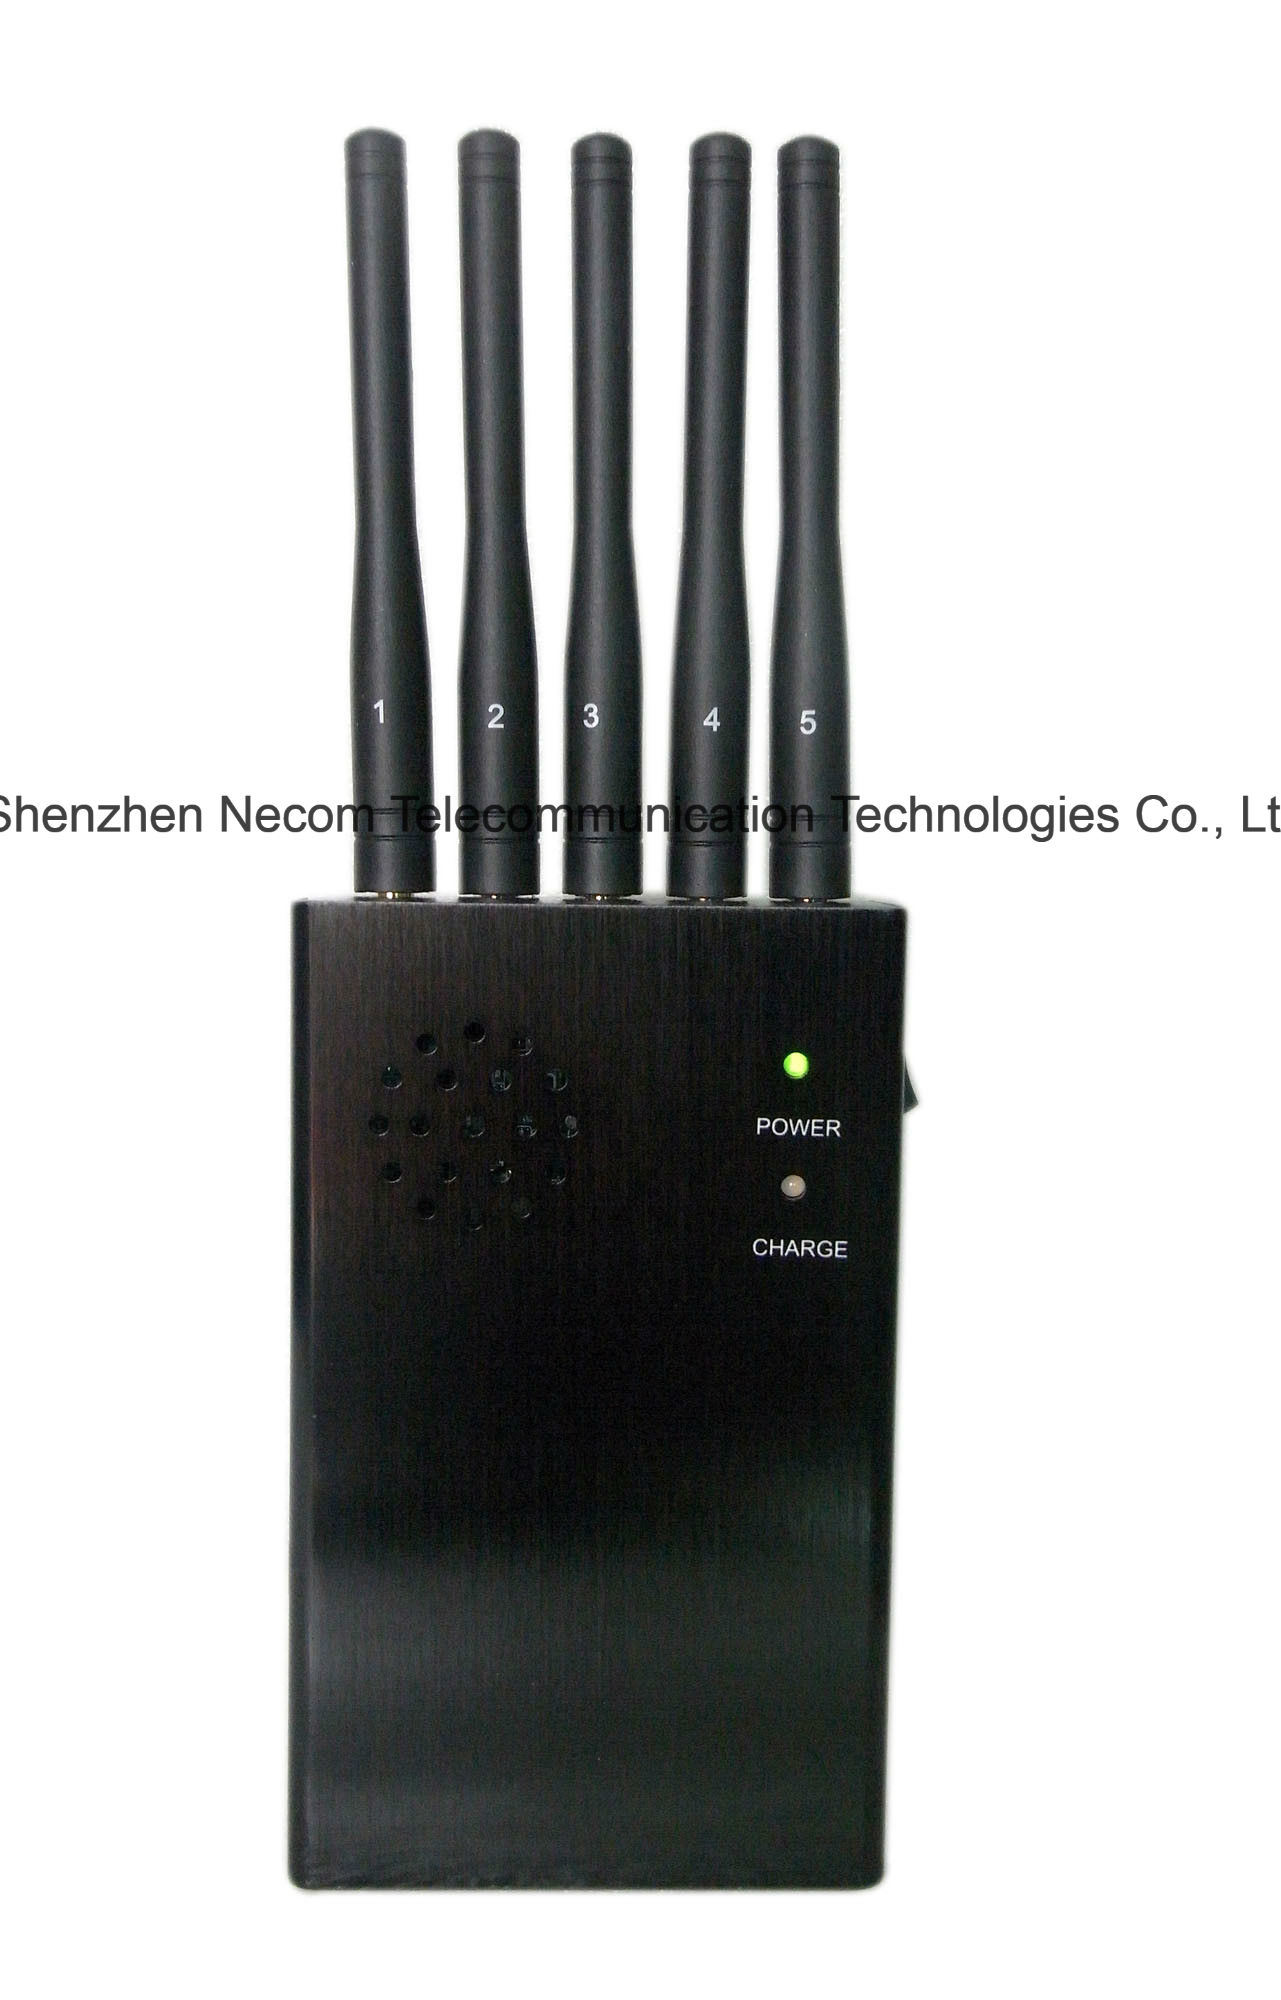 vehicle gps signal jammer supplier - China Wireless Cell Phone Signal Jammer CDMA GSM Dcs Phs 3G, Five Antenna, Wireless GPS & WiFi Cell Phone 5 Antenna Portable Jammer - China 5 Band Signal Blockers, Five Antennas Jammers